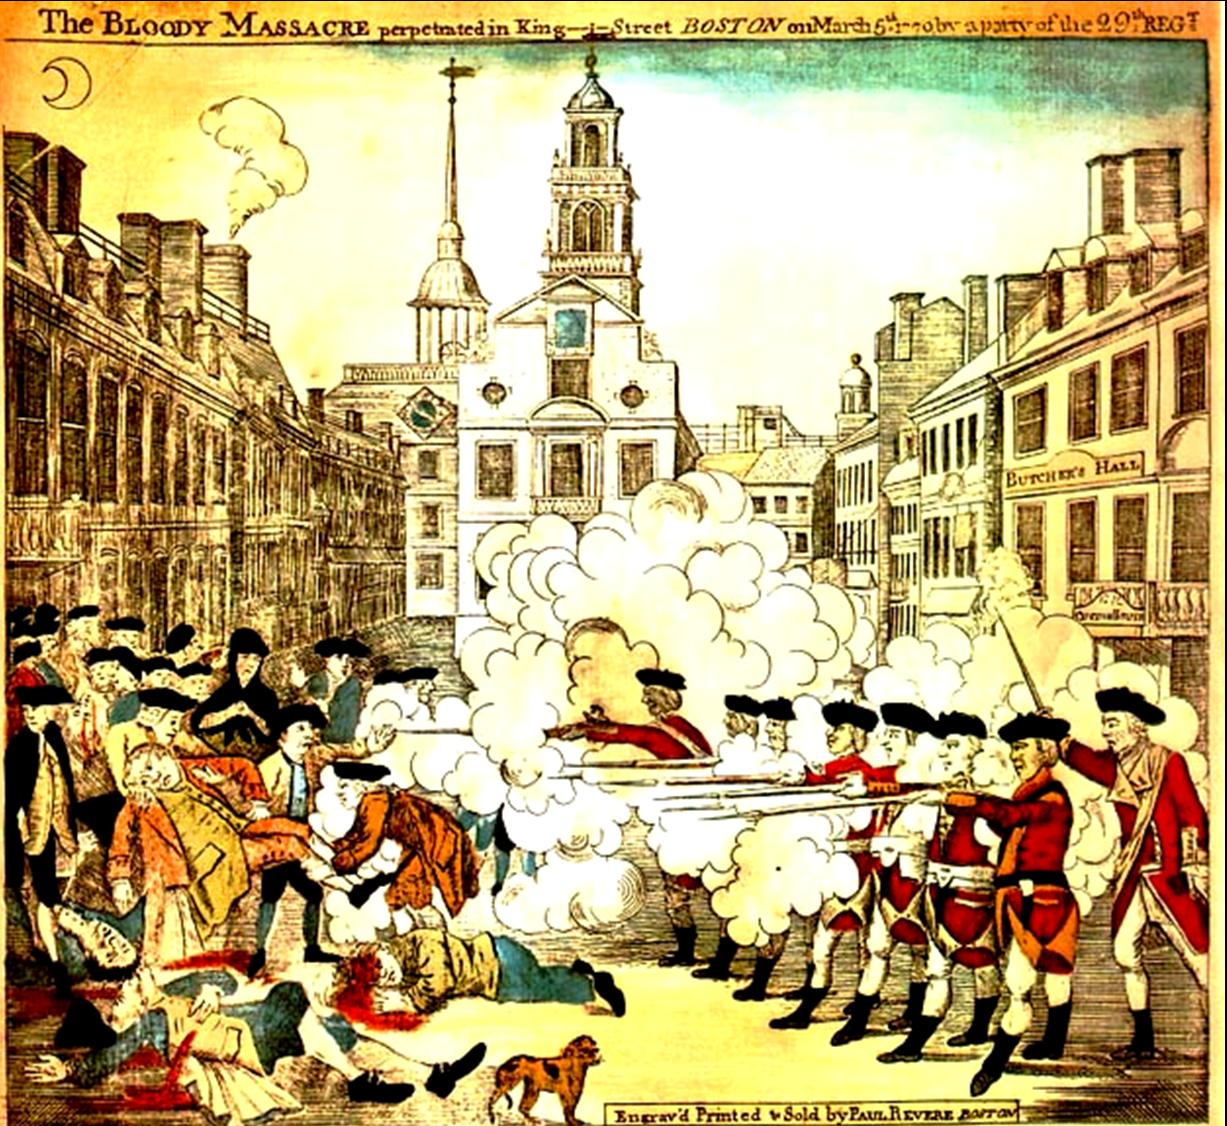 bostonmassacre Turn the other one?  Or liberty?  Or death?